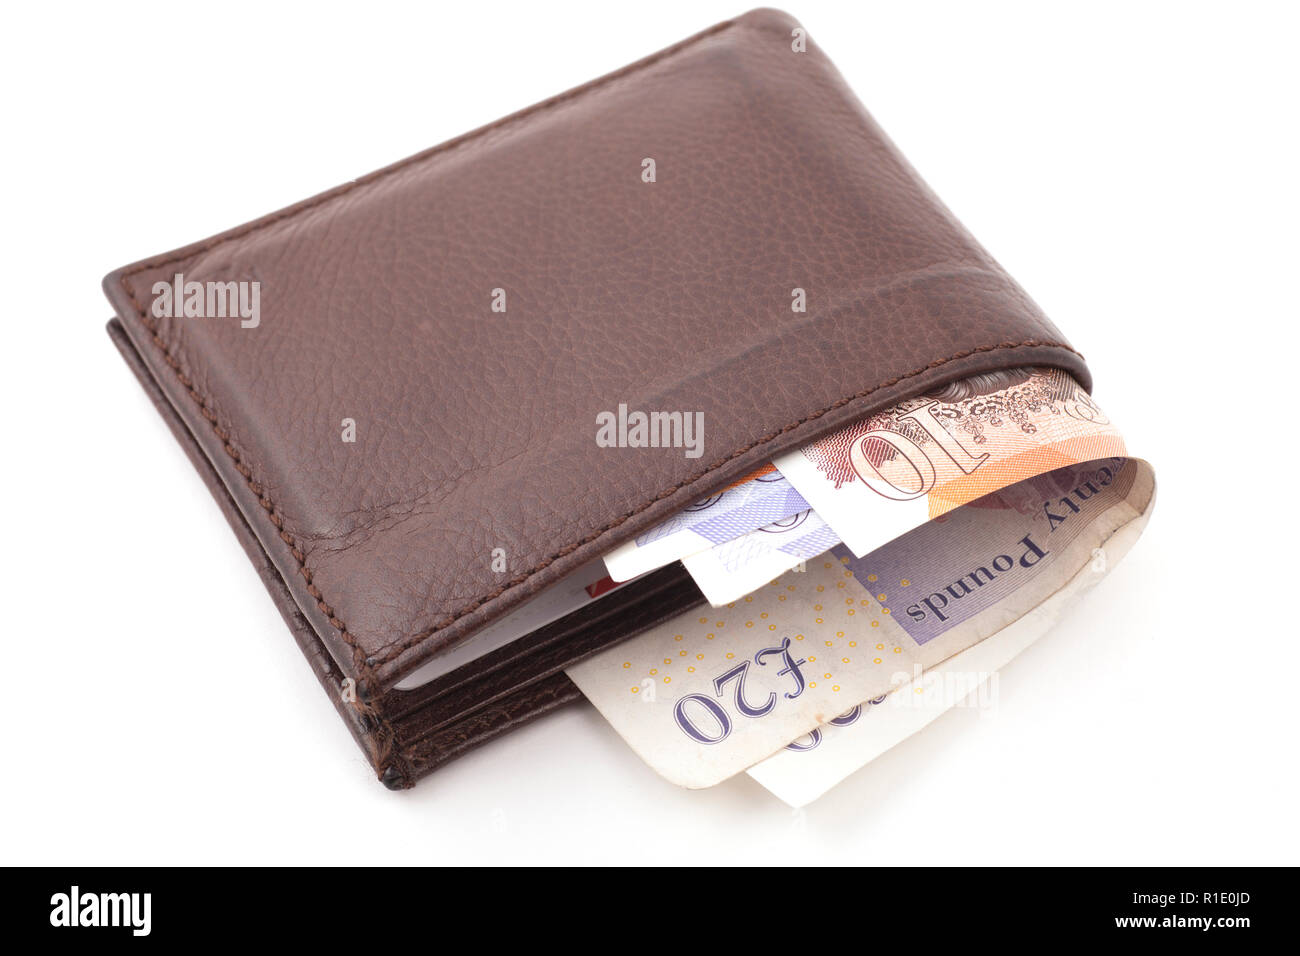 Wallet full of money - Stock Image